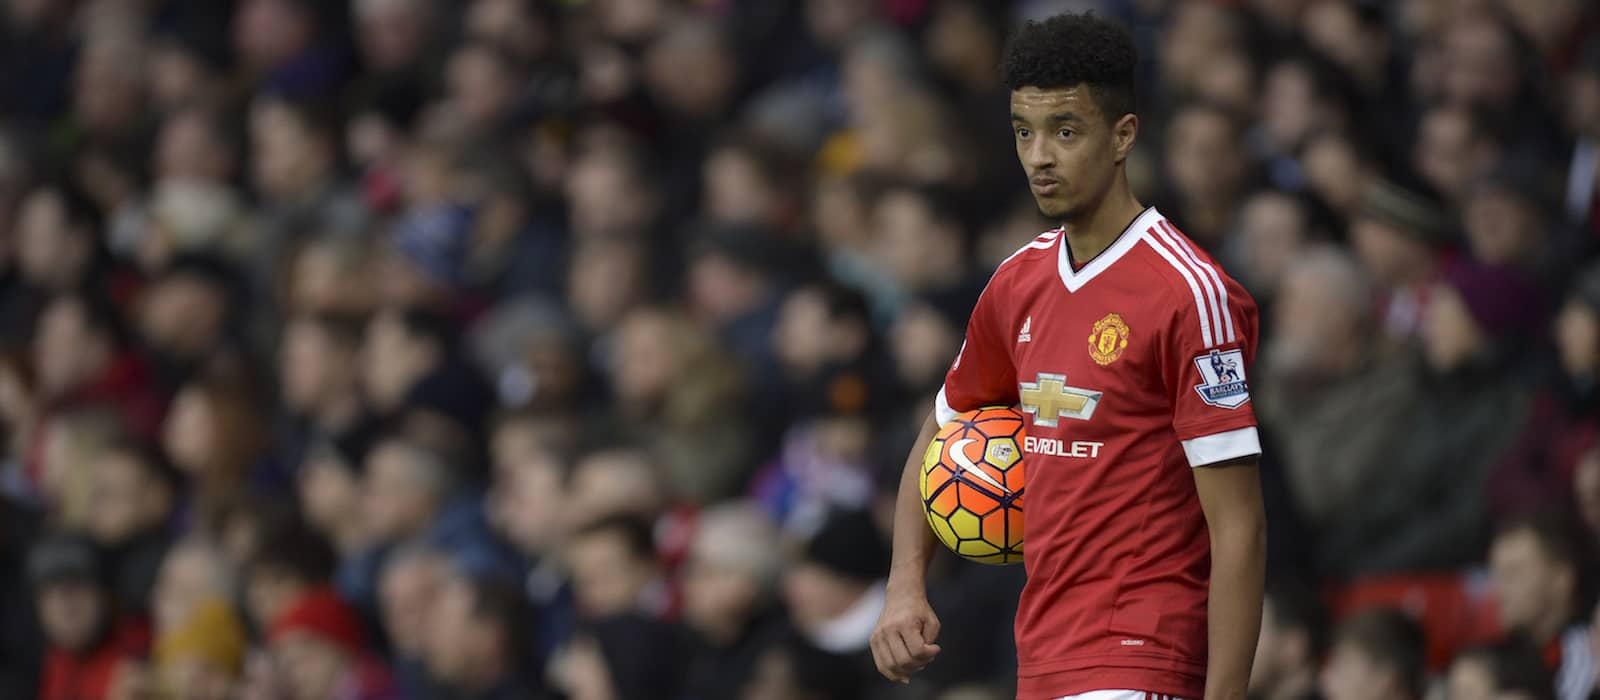 Cameron Borthwick-Jackson undergoes medical with Leeds United